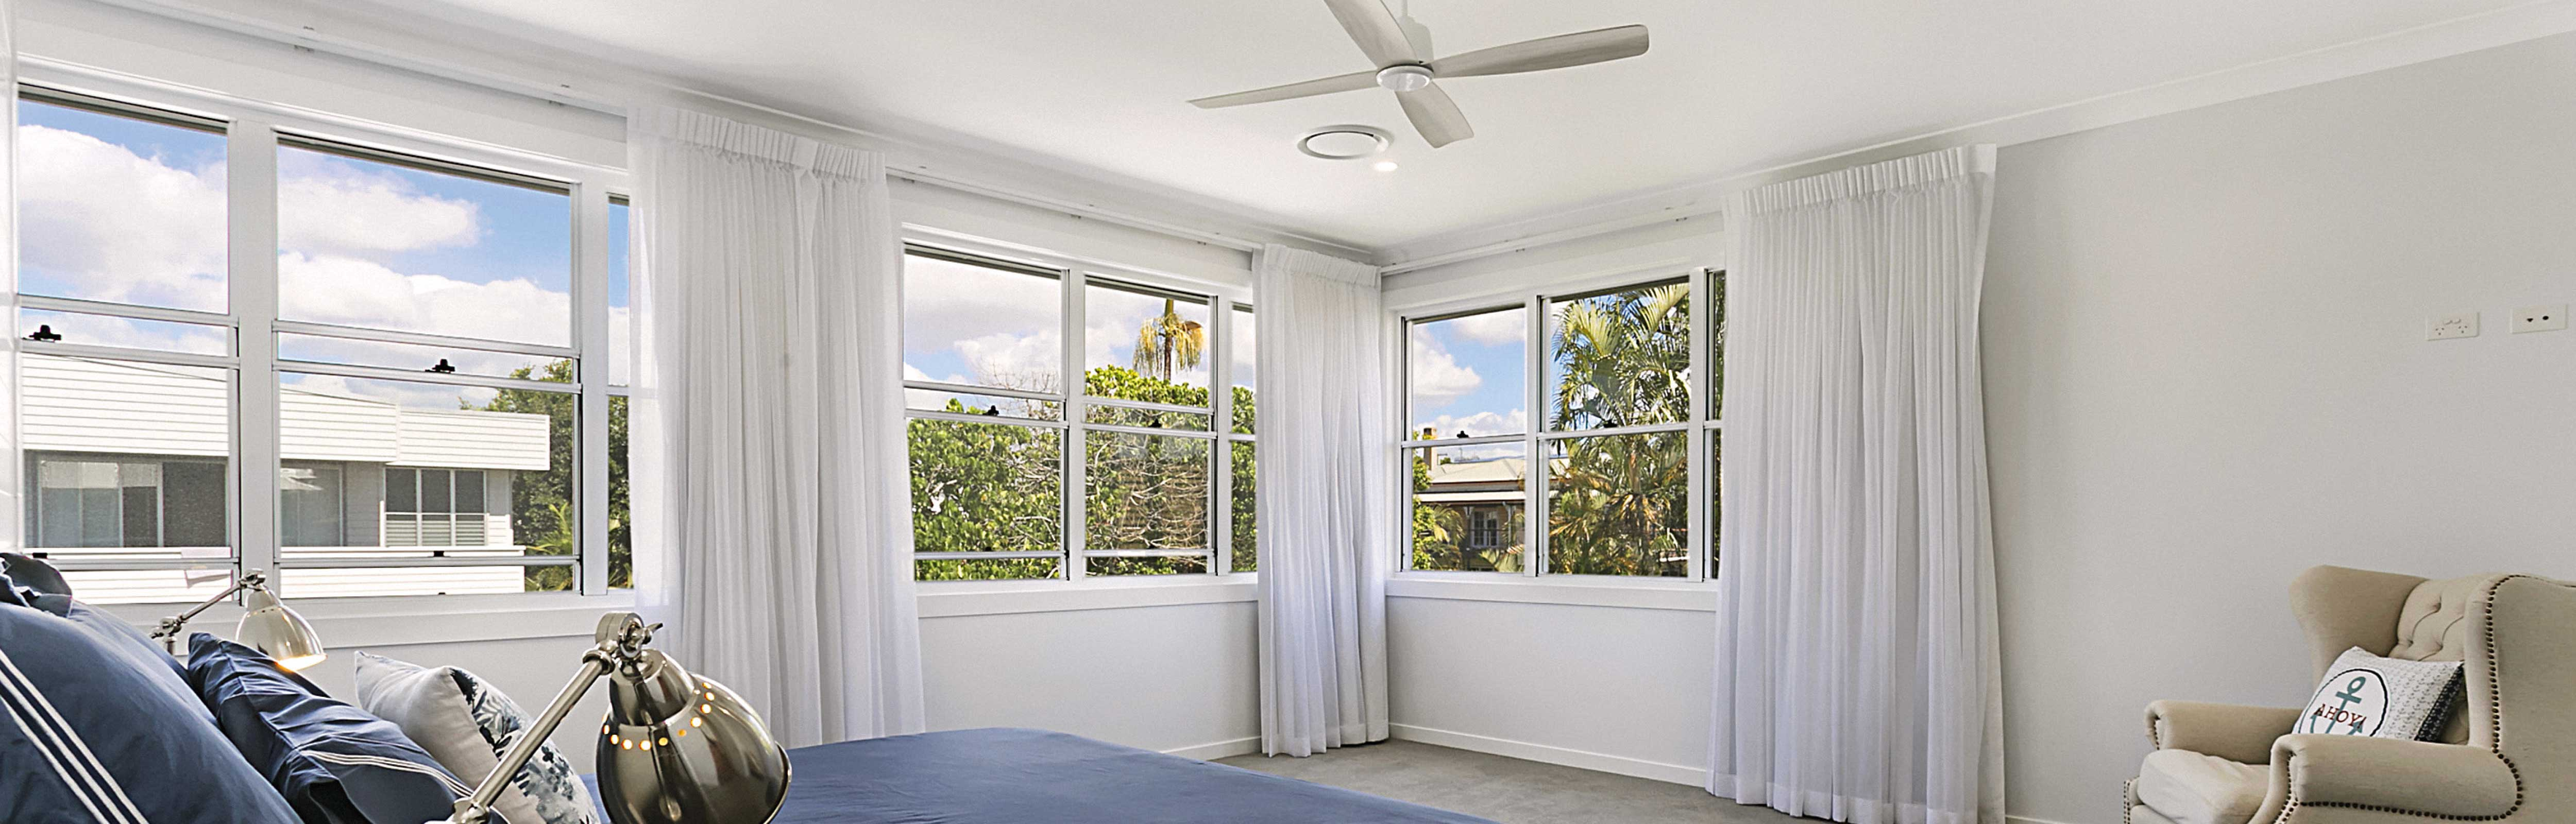 White Aluminium Double Hung Windows in a bedroom